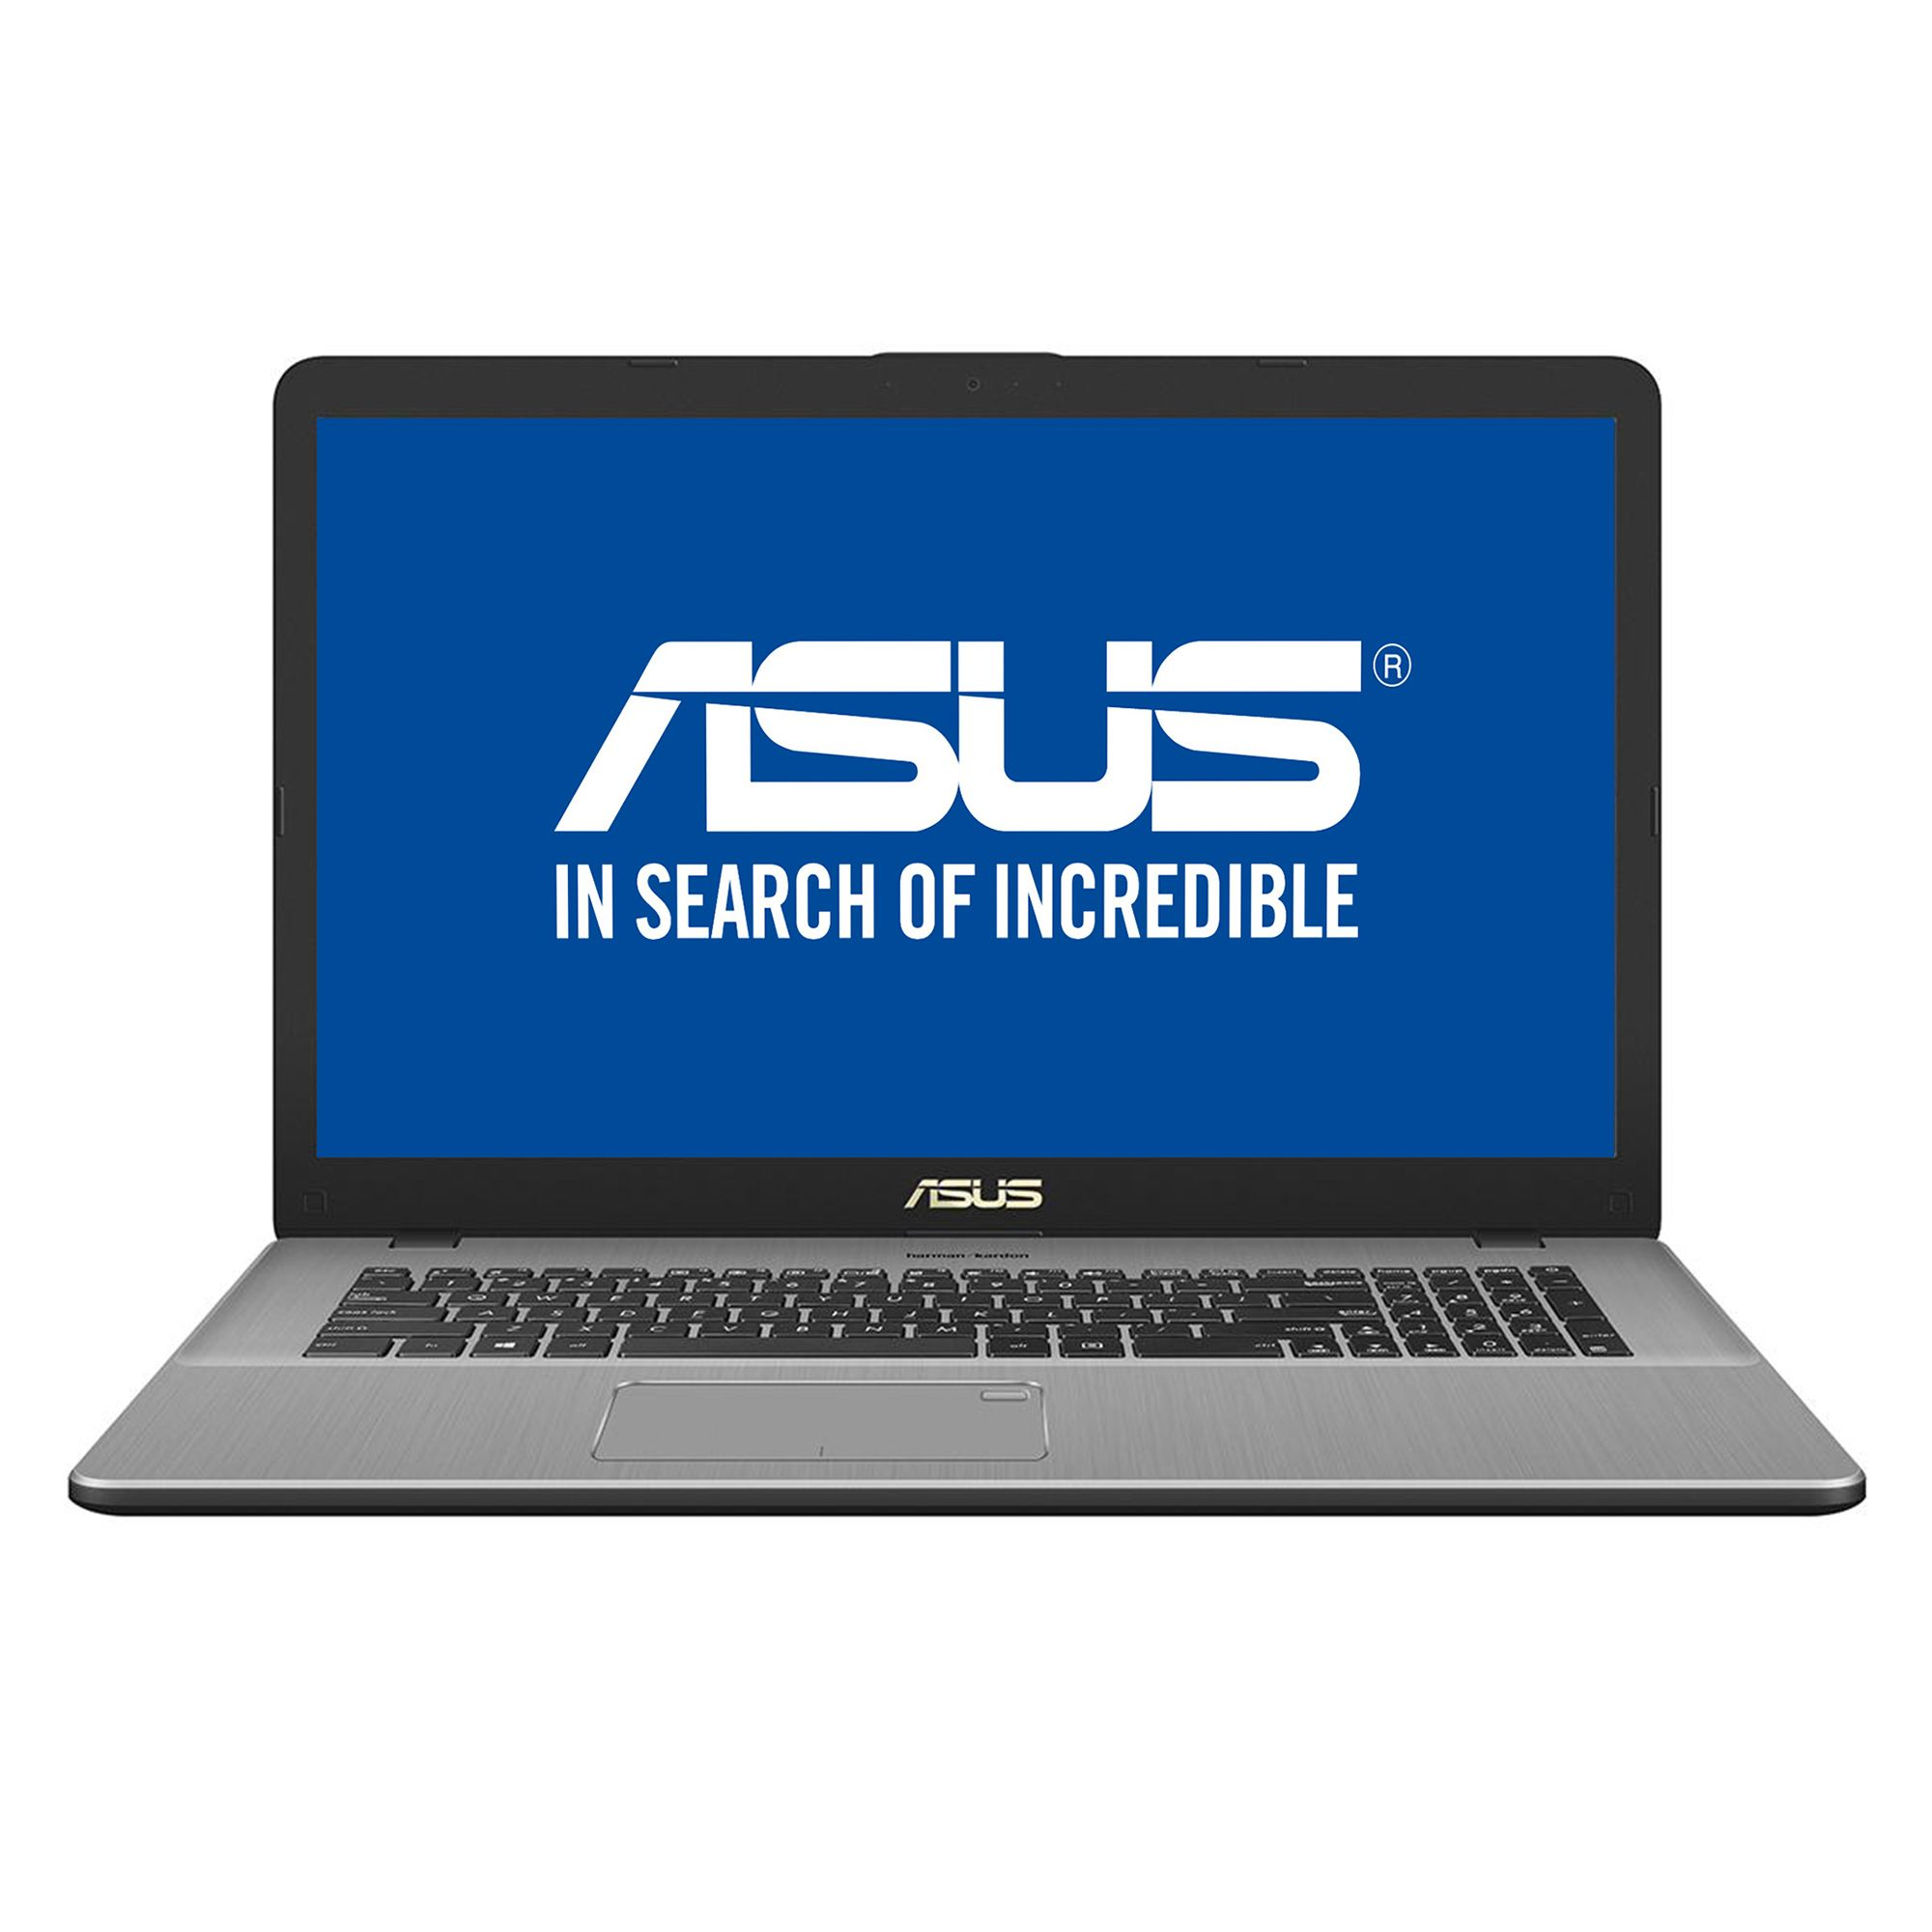 Notebook Asus VivoBook Pro 17 N705UQ 17.3 Full HD Intel Core i5-7200U 940MX-2GB RAM 8GB HDD 1TB + SSD 128GB Endless